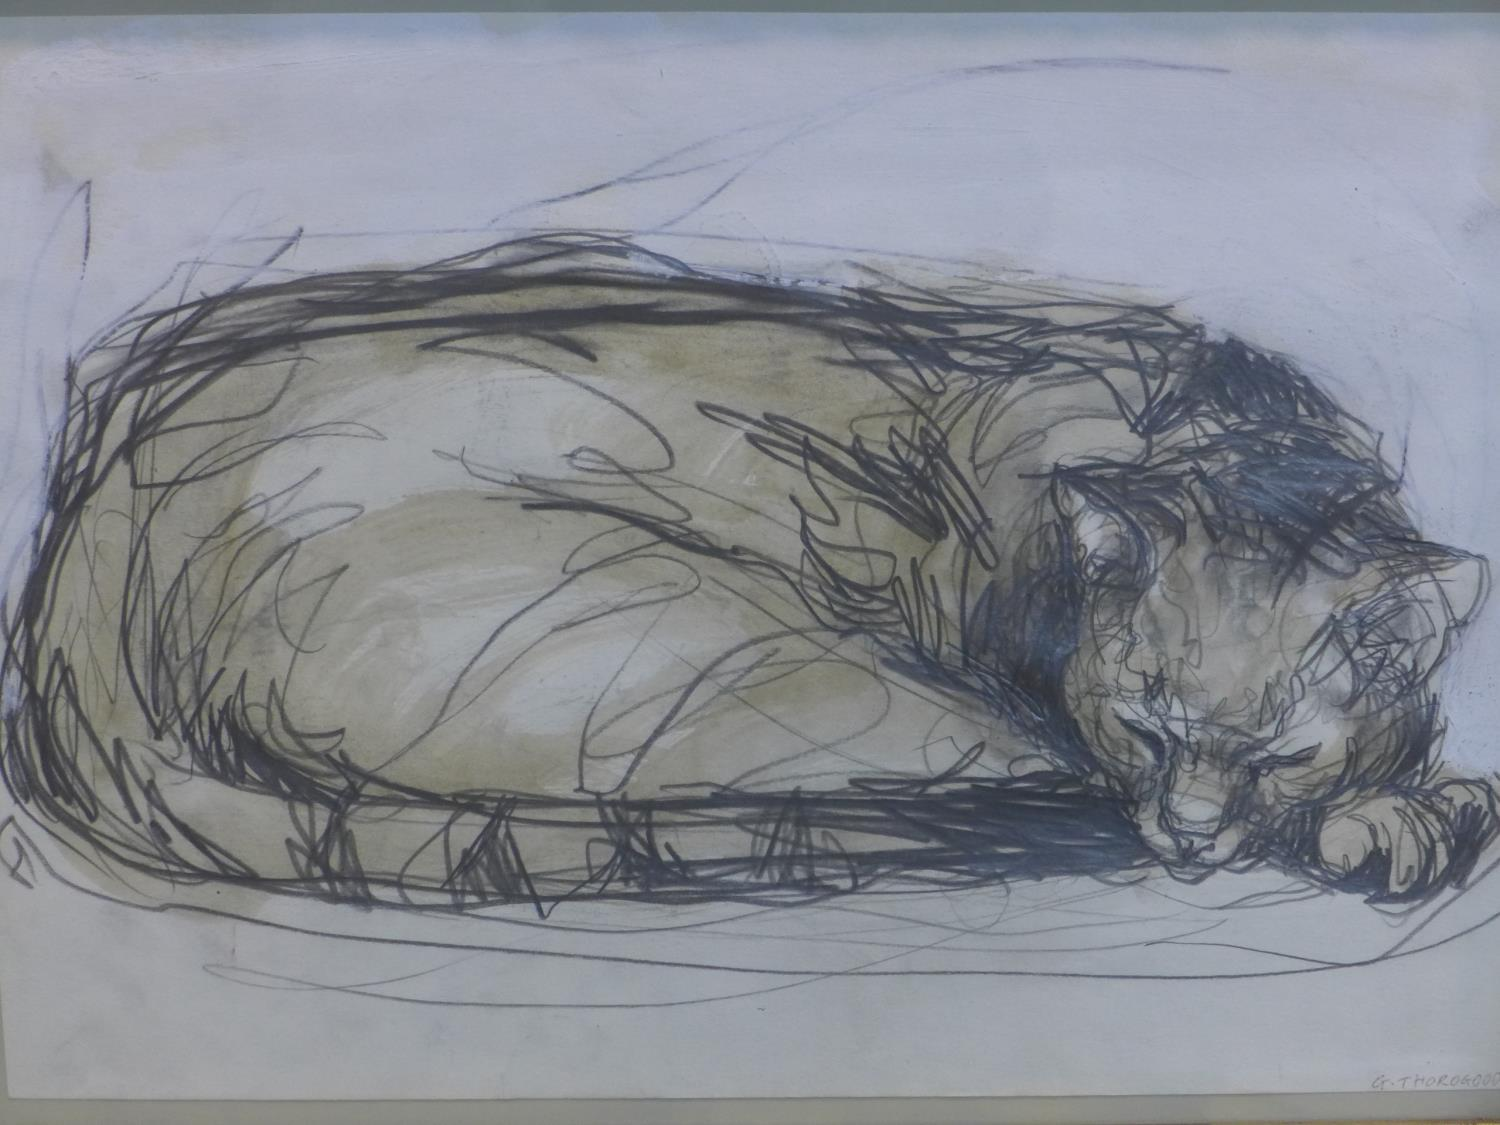 Lot 55 - Contemporary British draughtsman, sleeping cat, pencil and watercolour, signed and dated 'G.